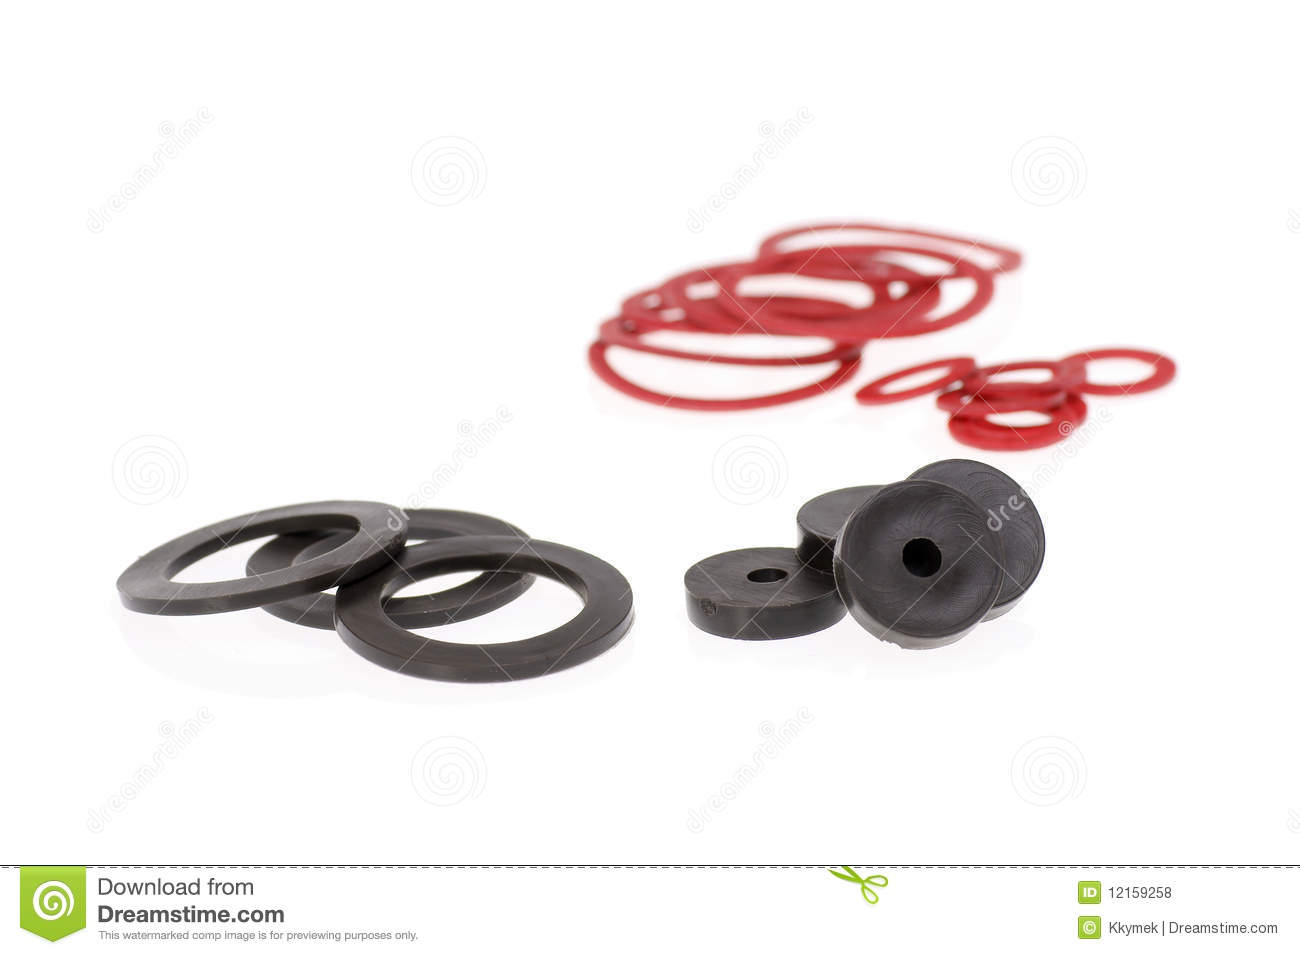 Isolated gaskets